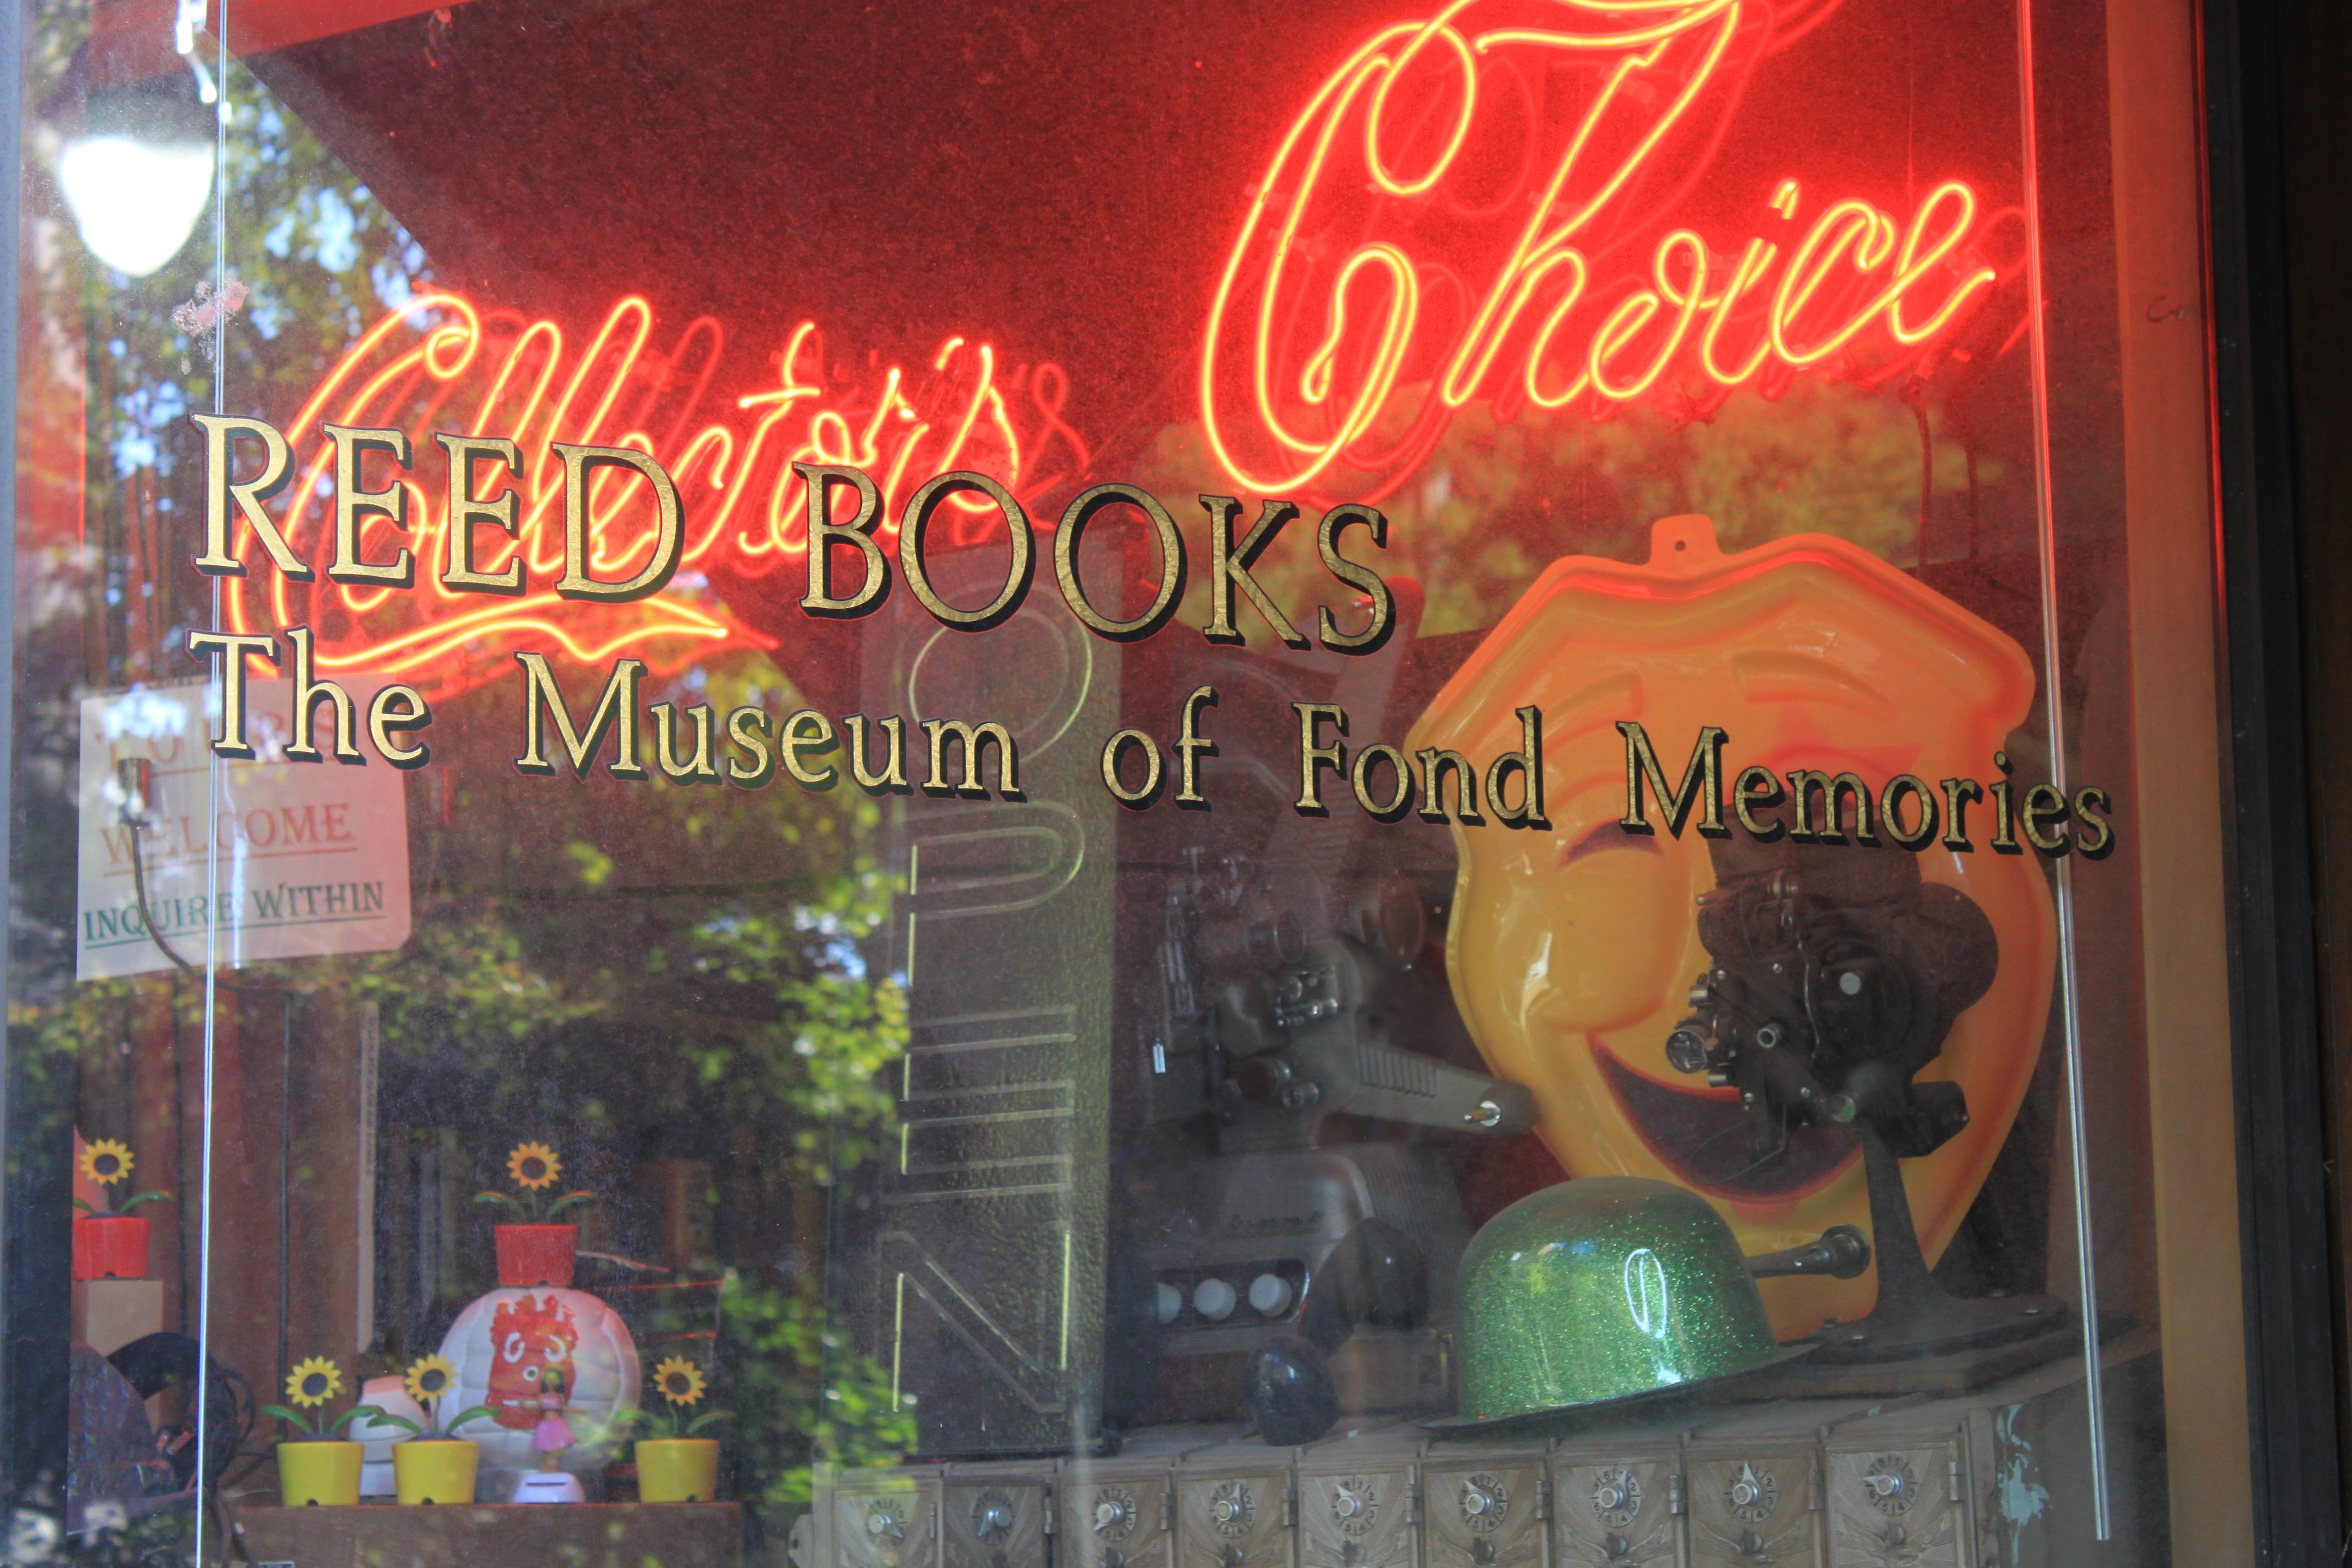 Reed Books: Museum of Fond Memories